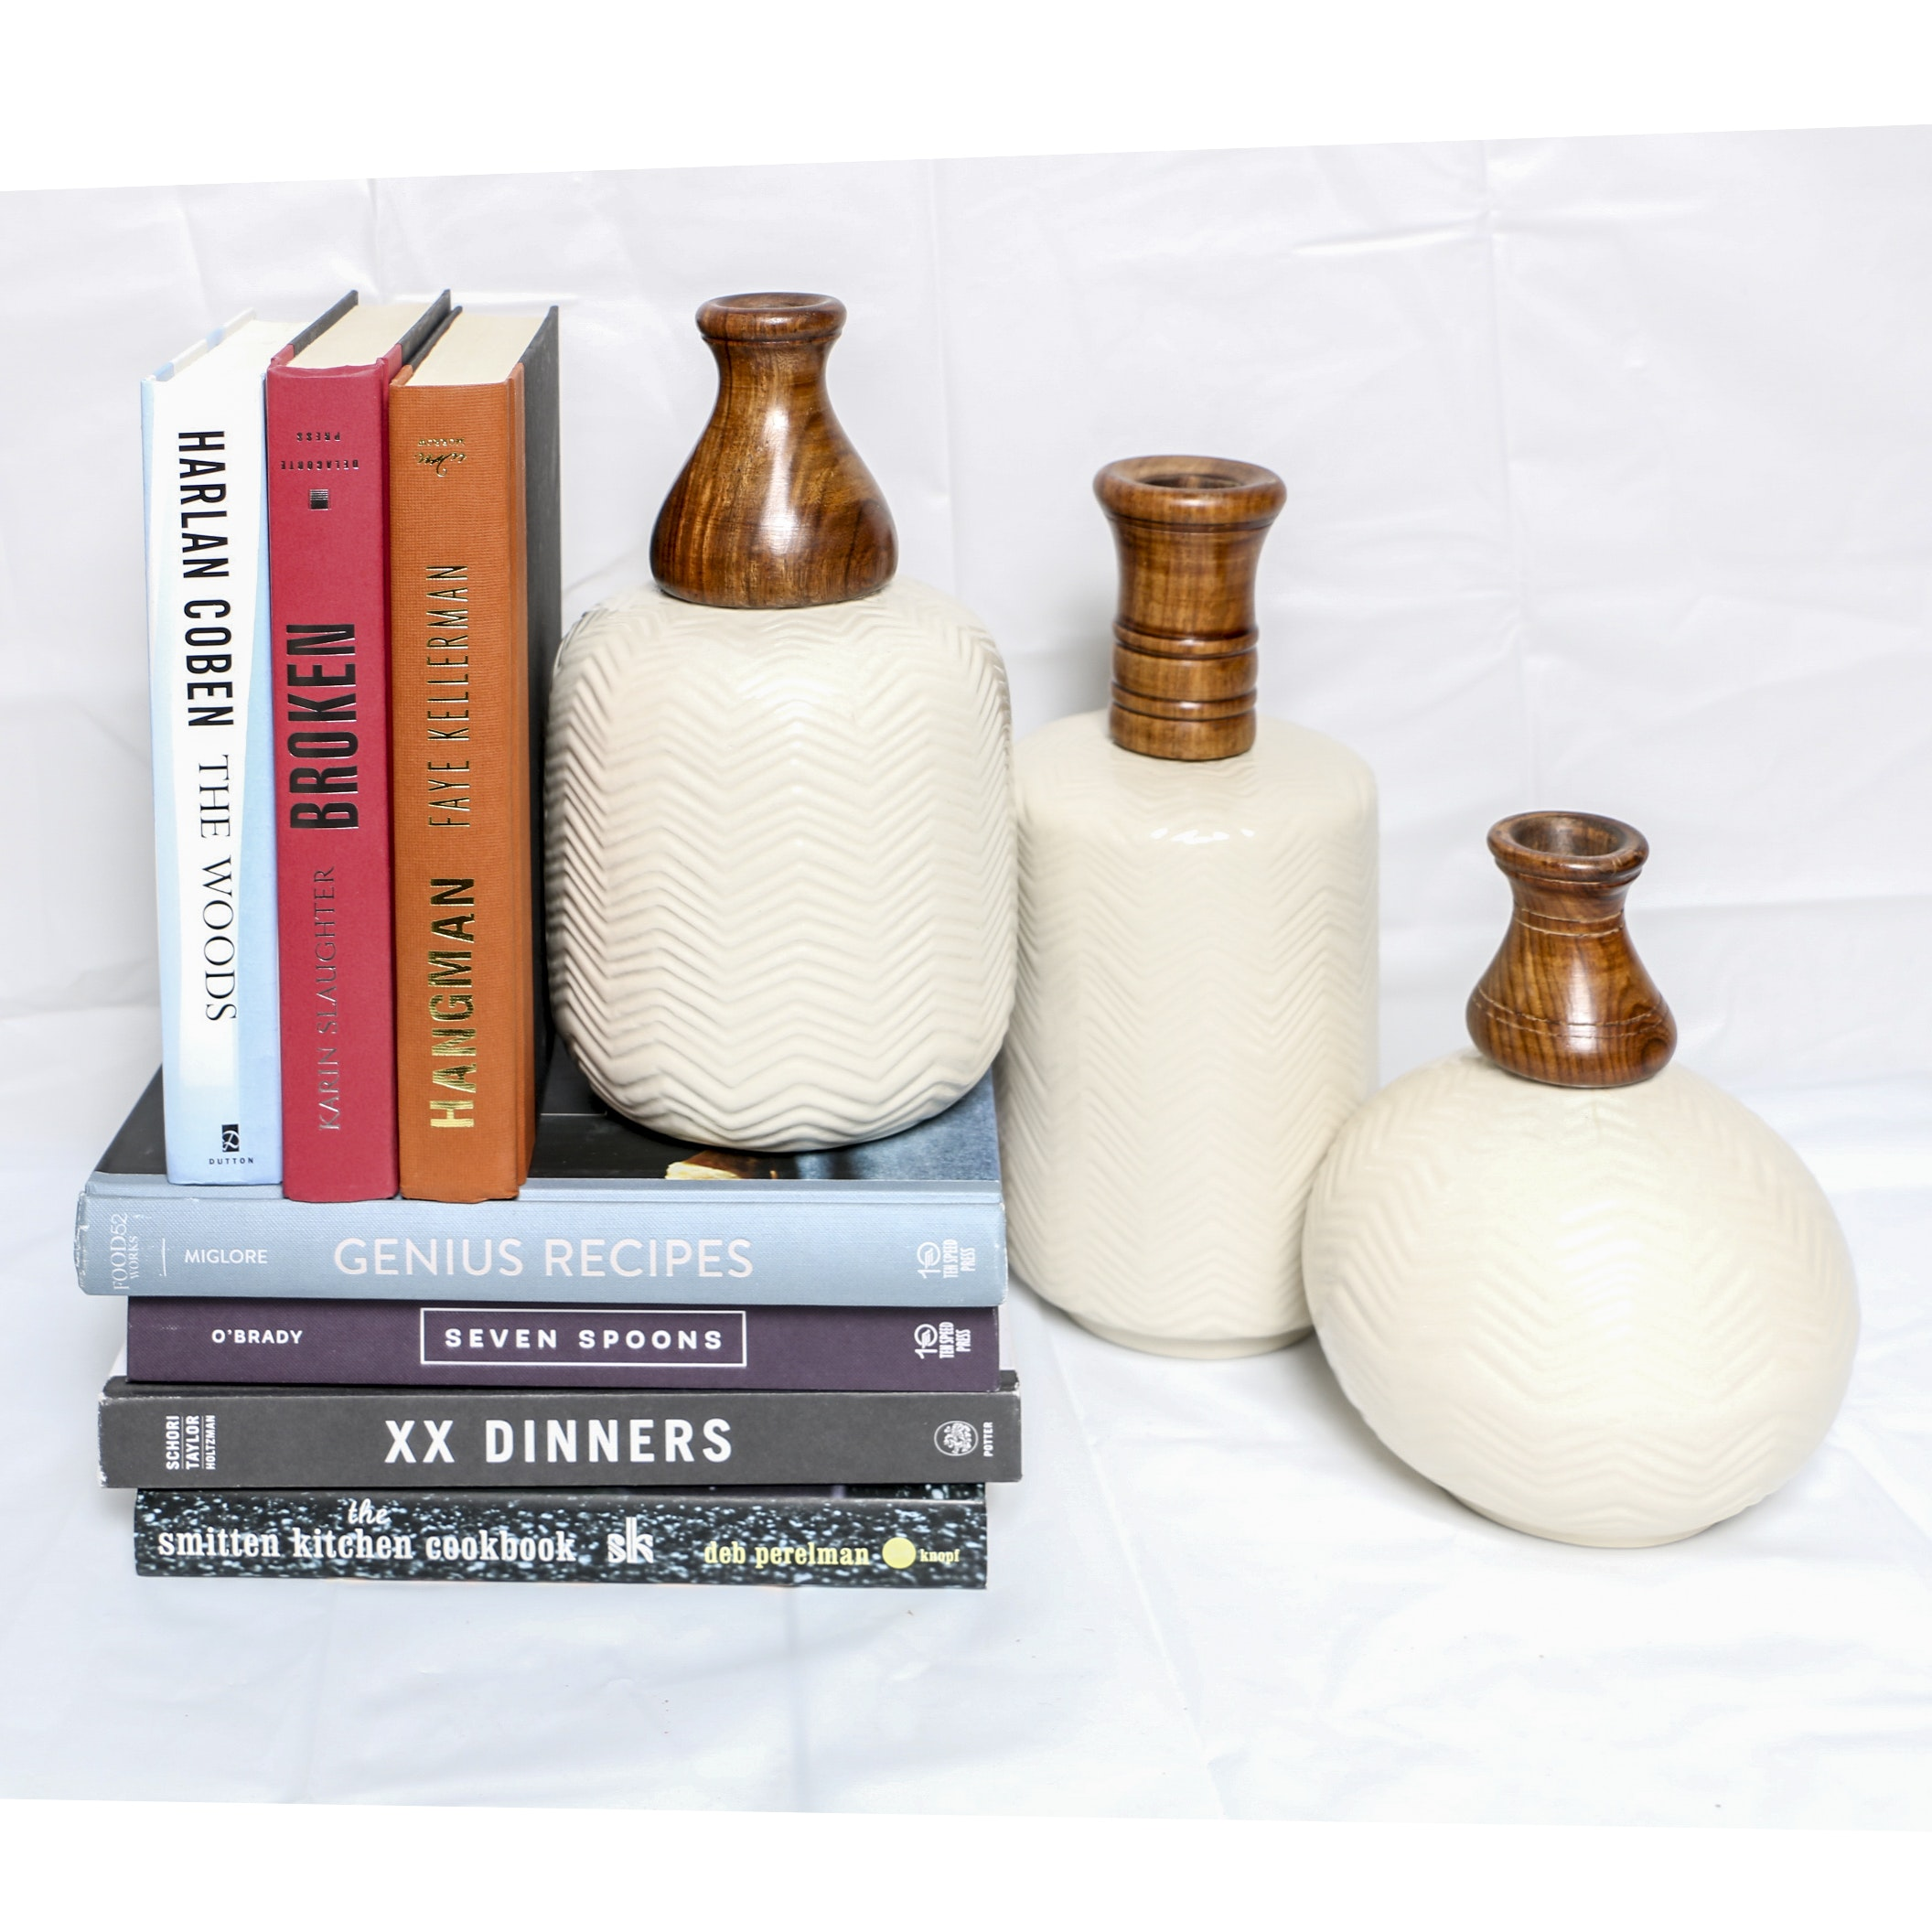 Decorative Ceramic and Wood Vases with Books